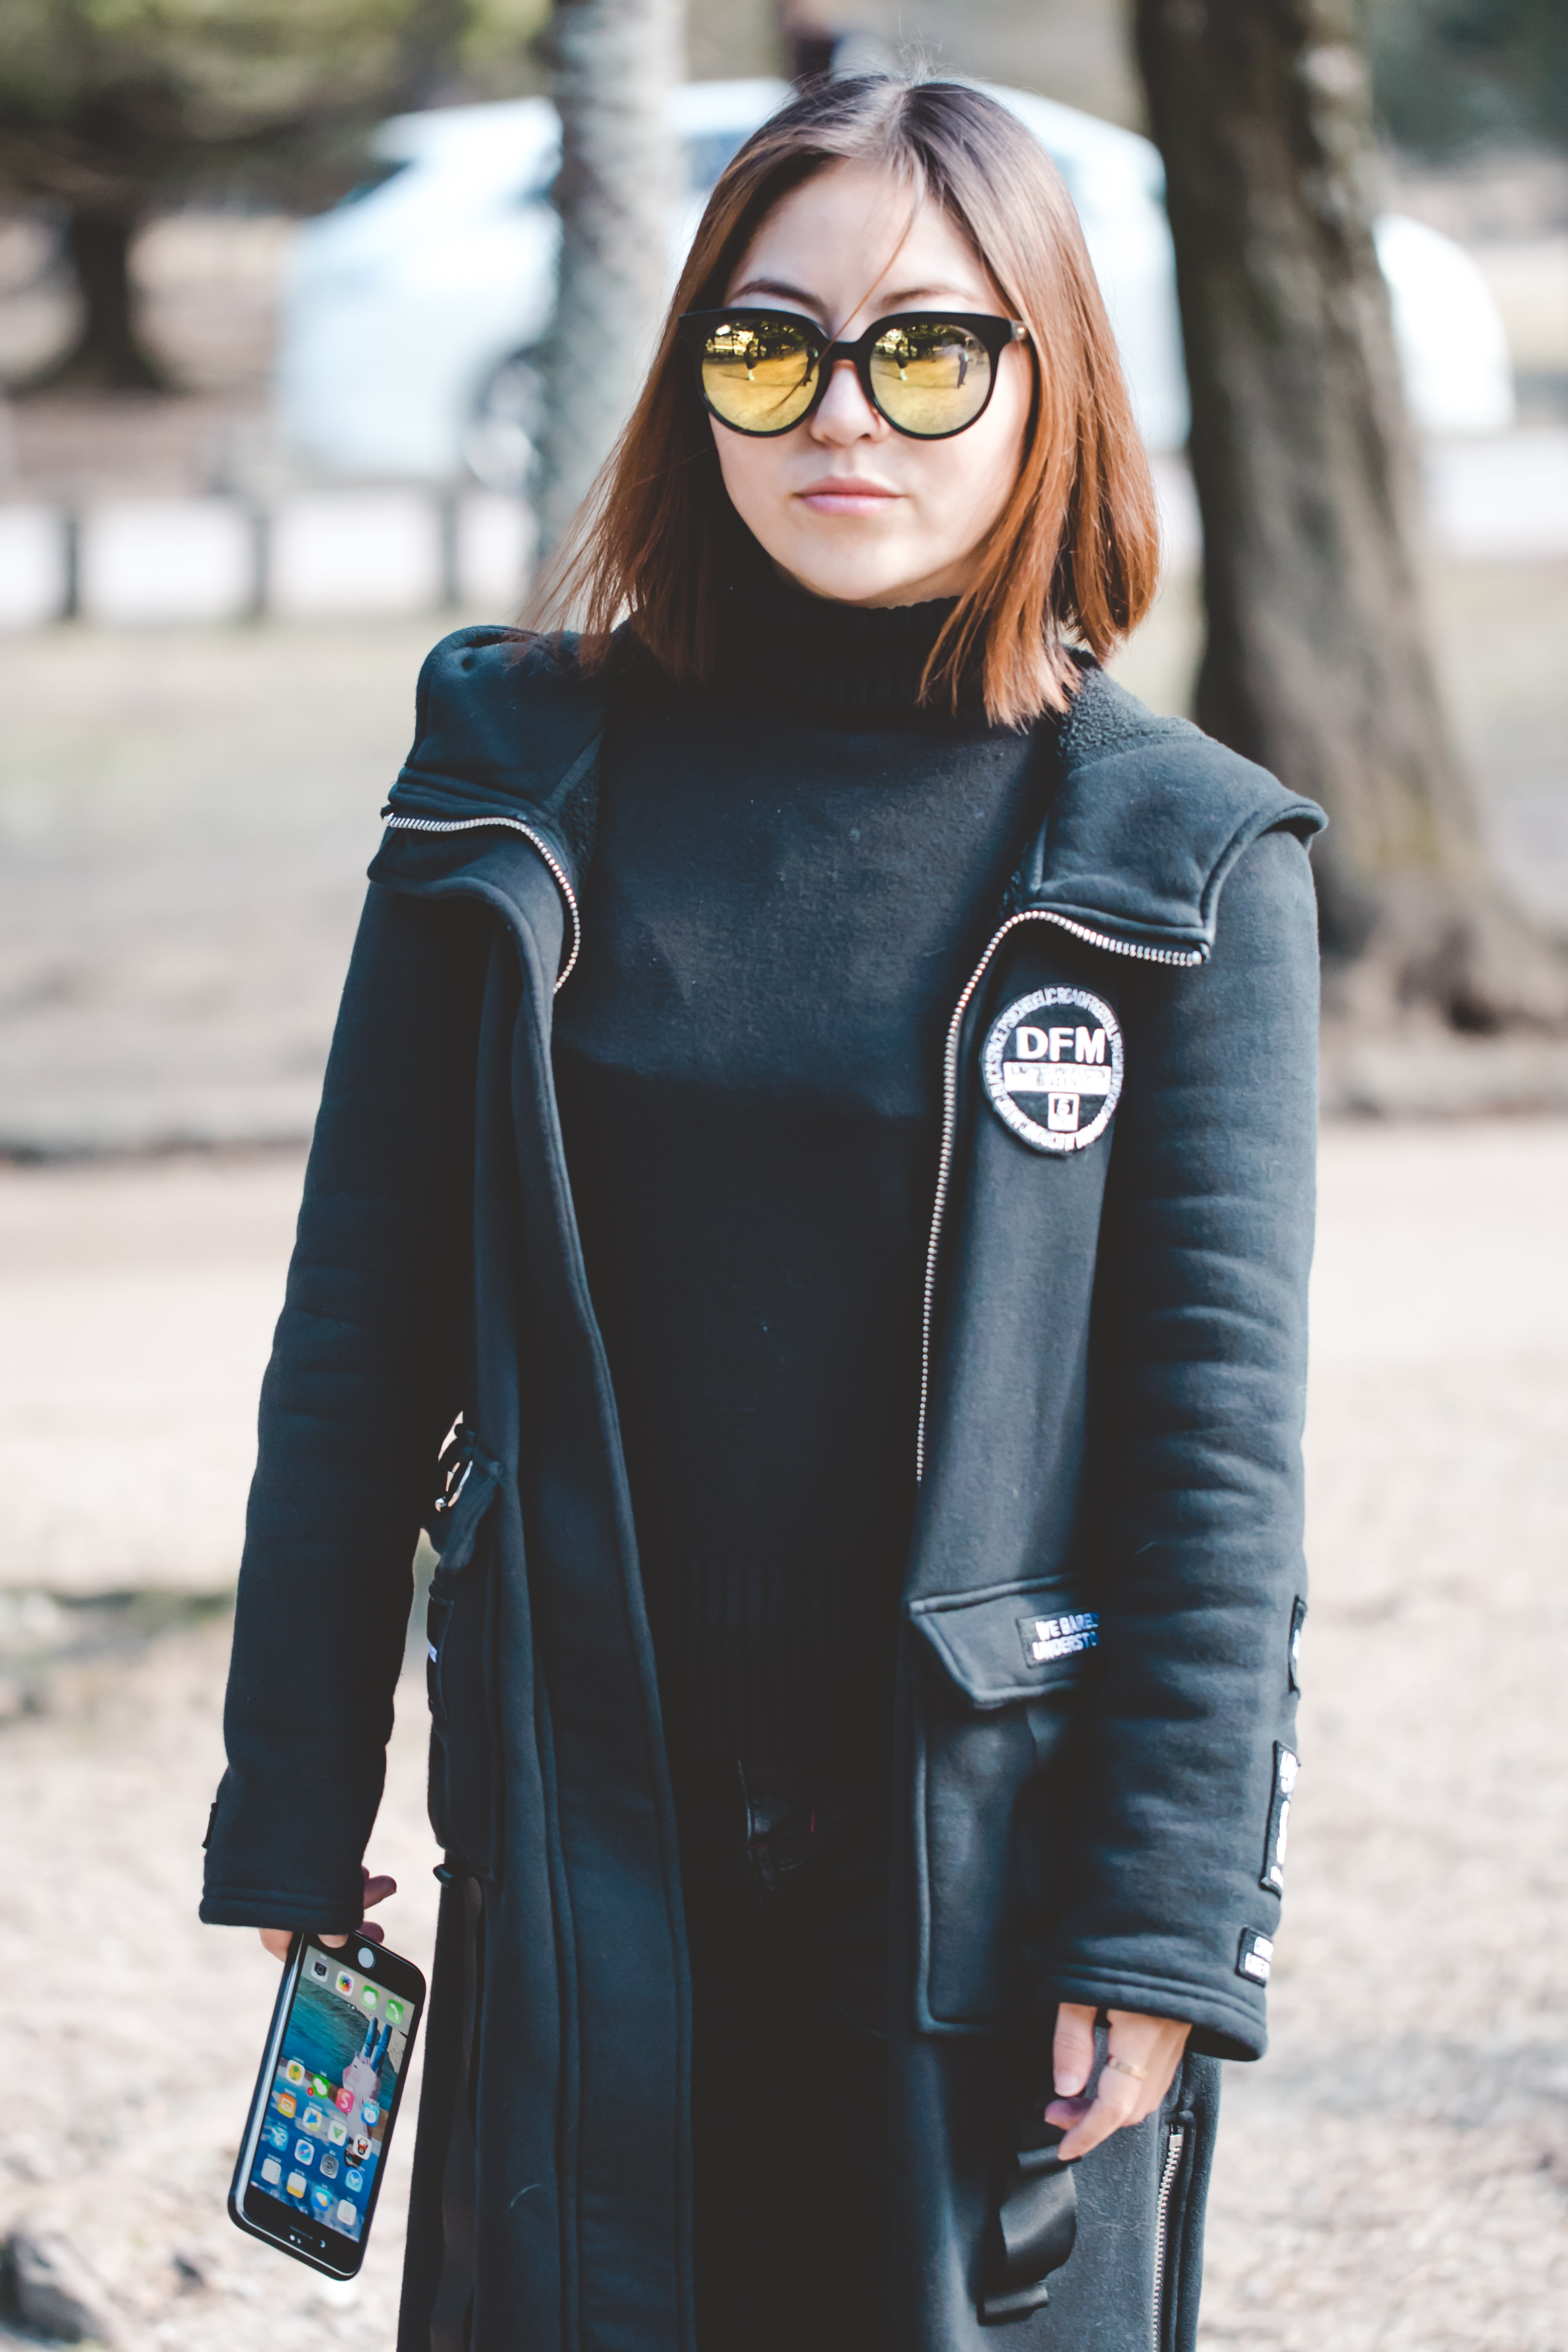 woman wearing sunglasses holding black Android smartphone